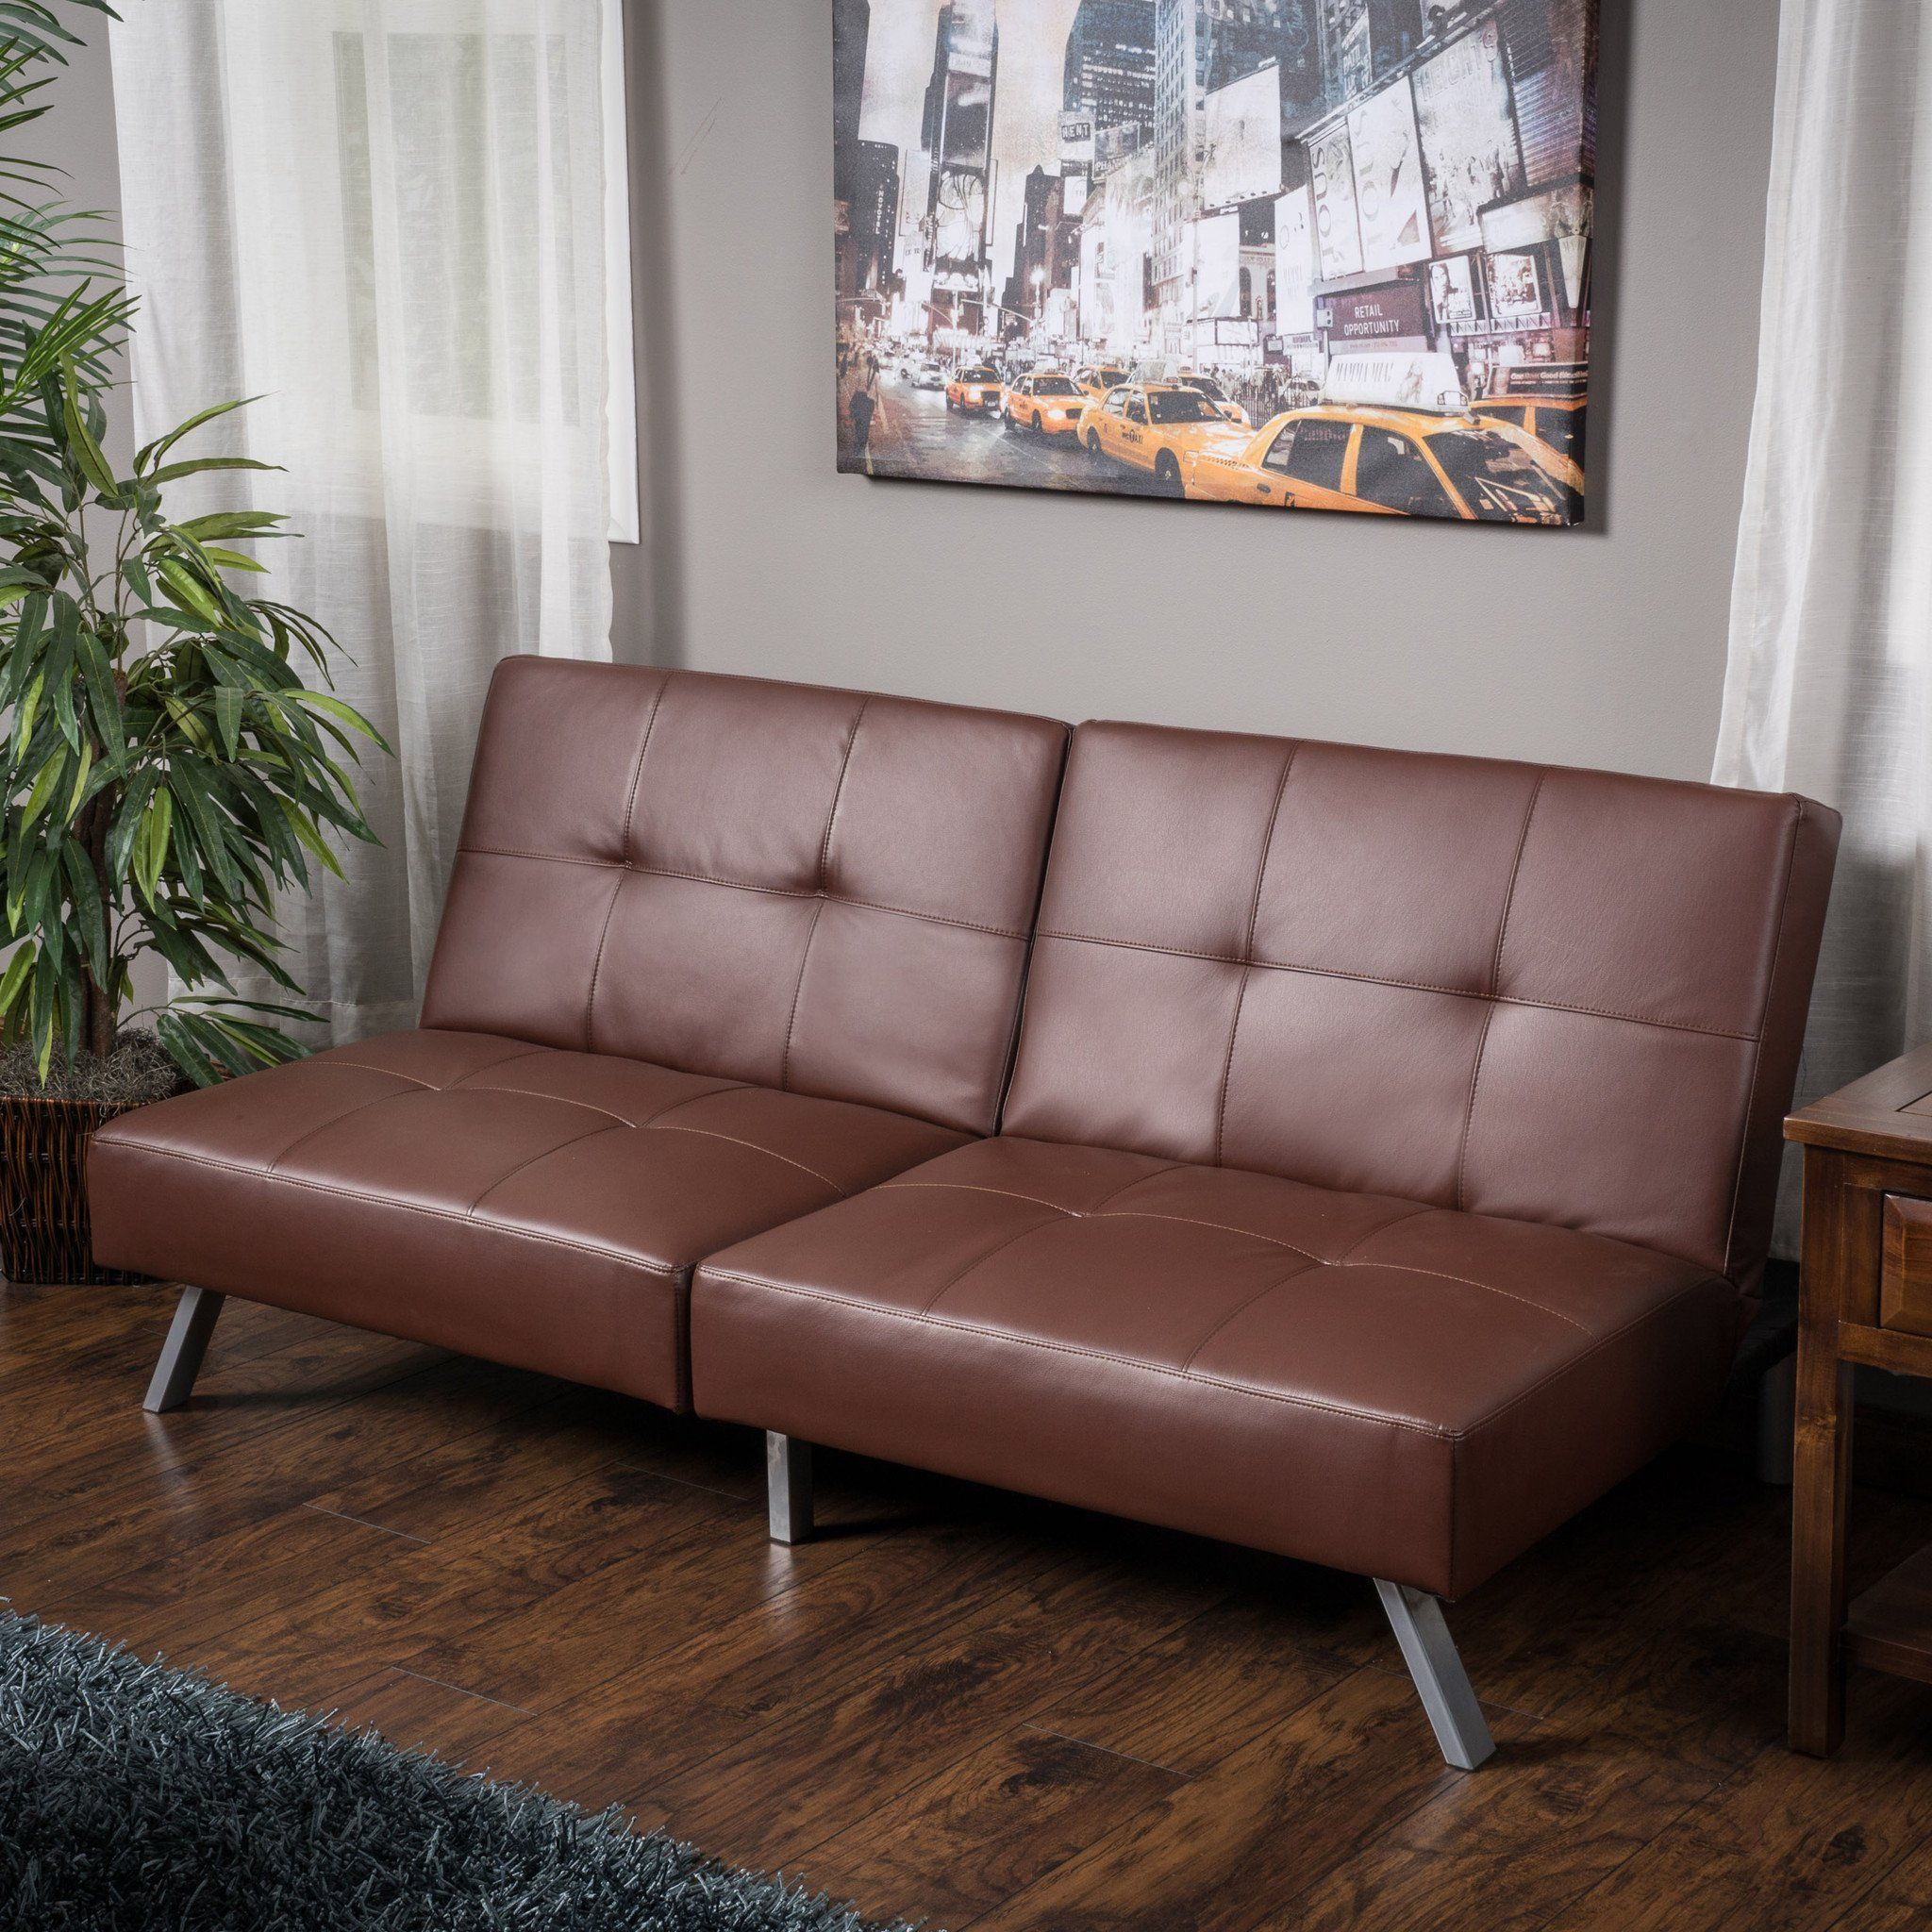 clack within leather with set plus click sofa contemporary together plan camel furniture brown back futon